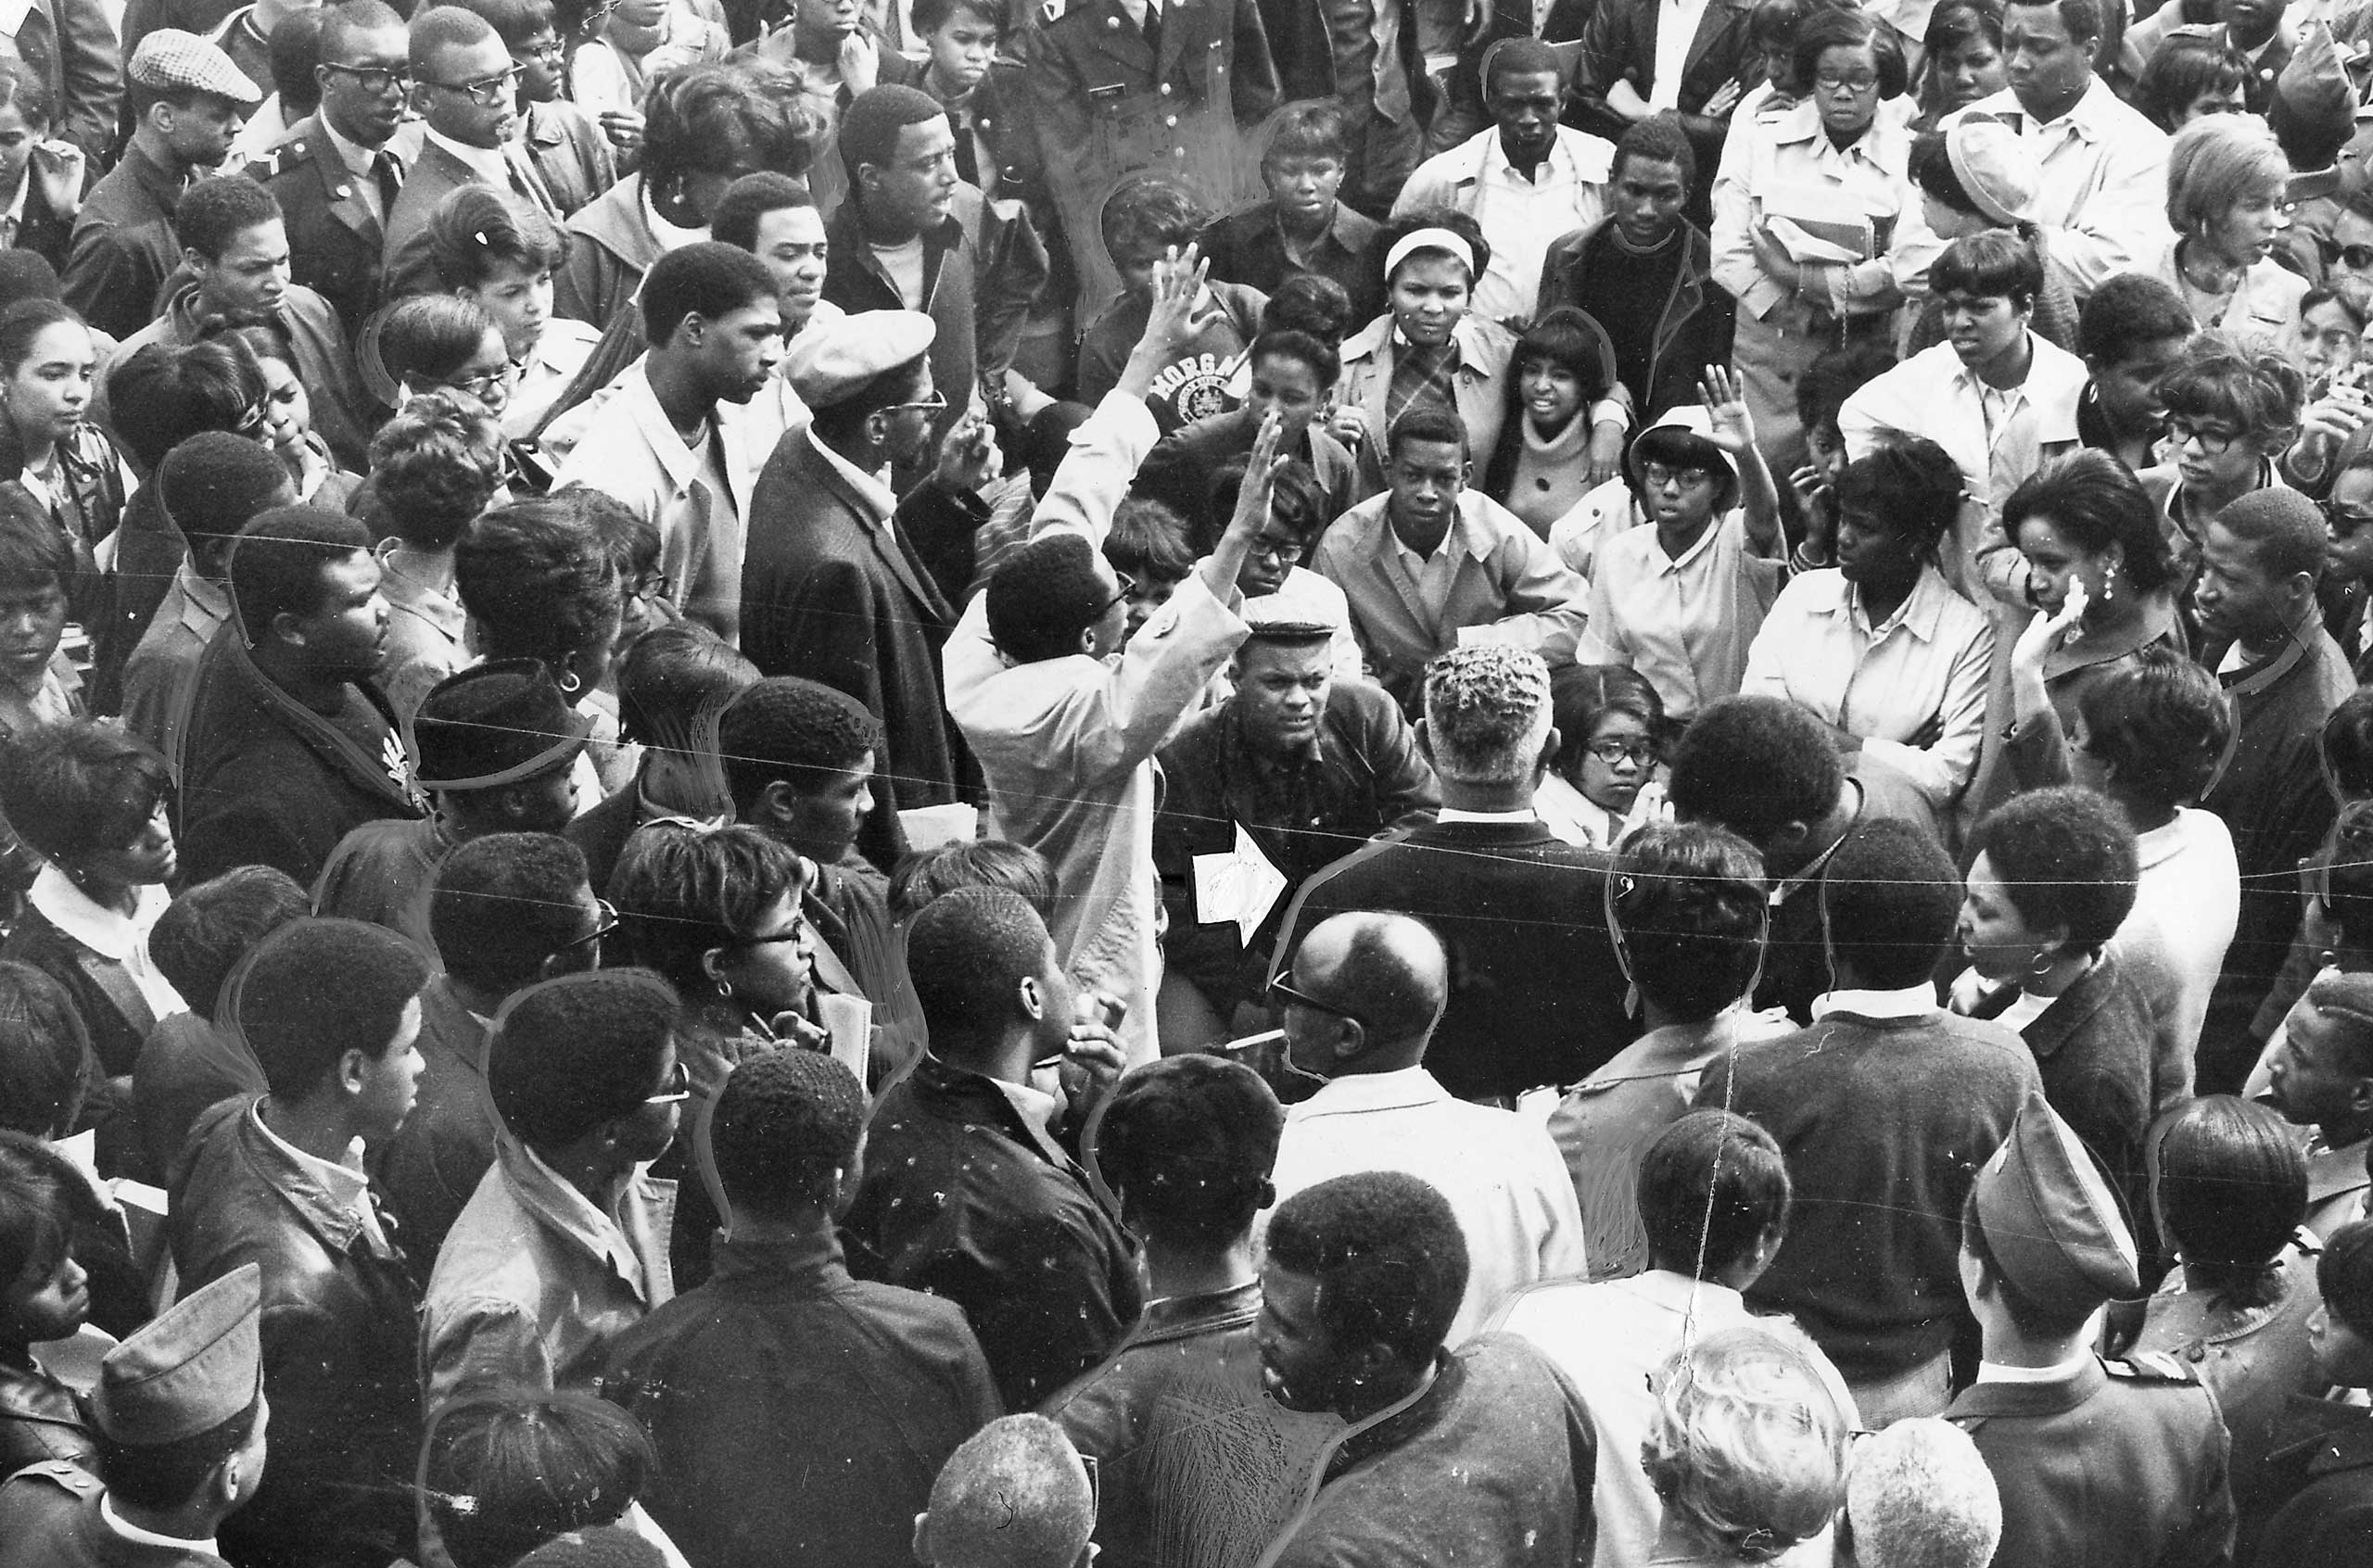 Students demonstrate during a Black Power event at Morgan State University in Baltimore on April 6, 1968.